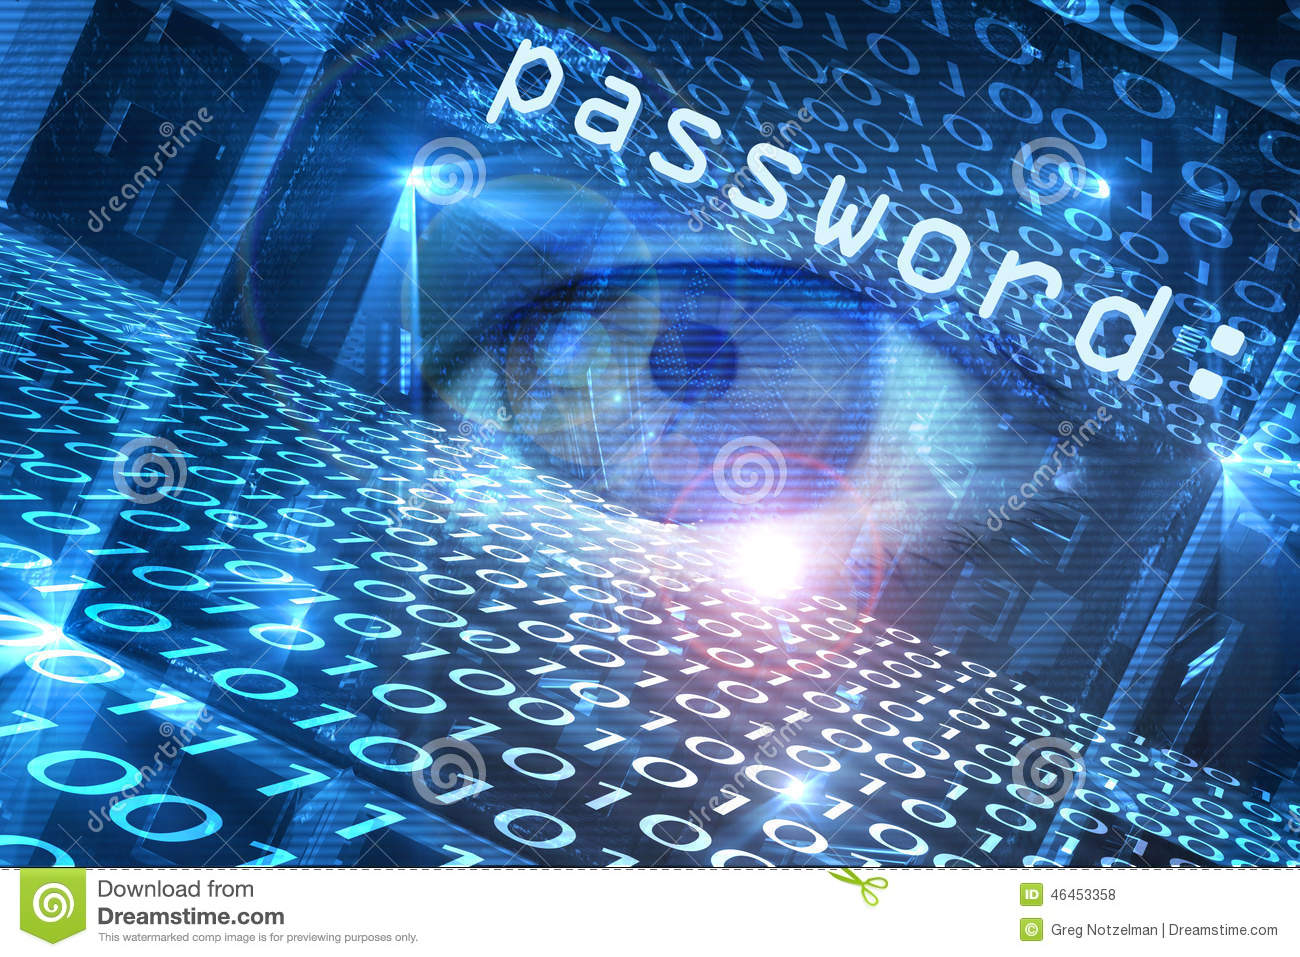 Cyber security clipart free. Concept stock photo image